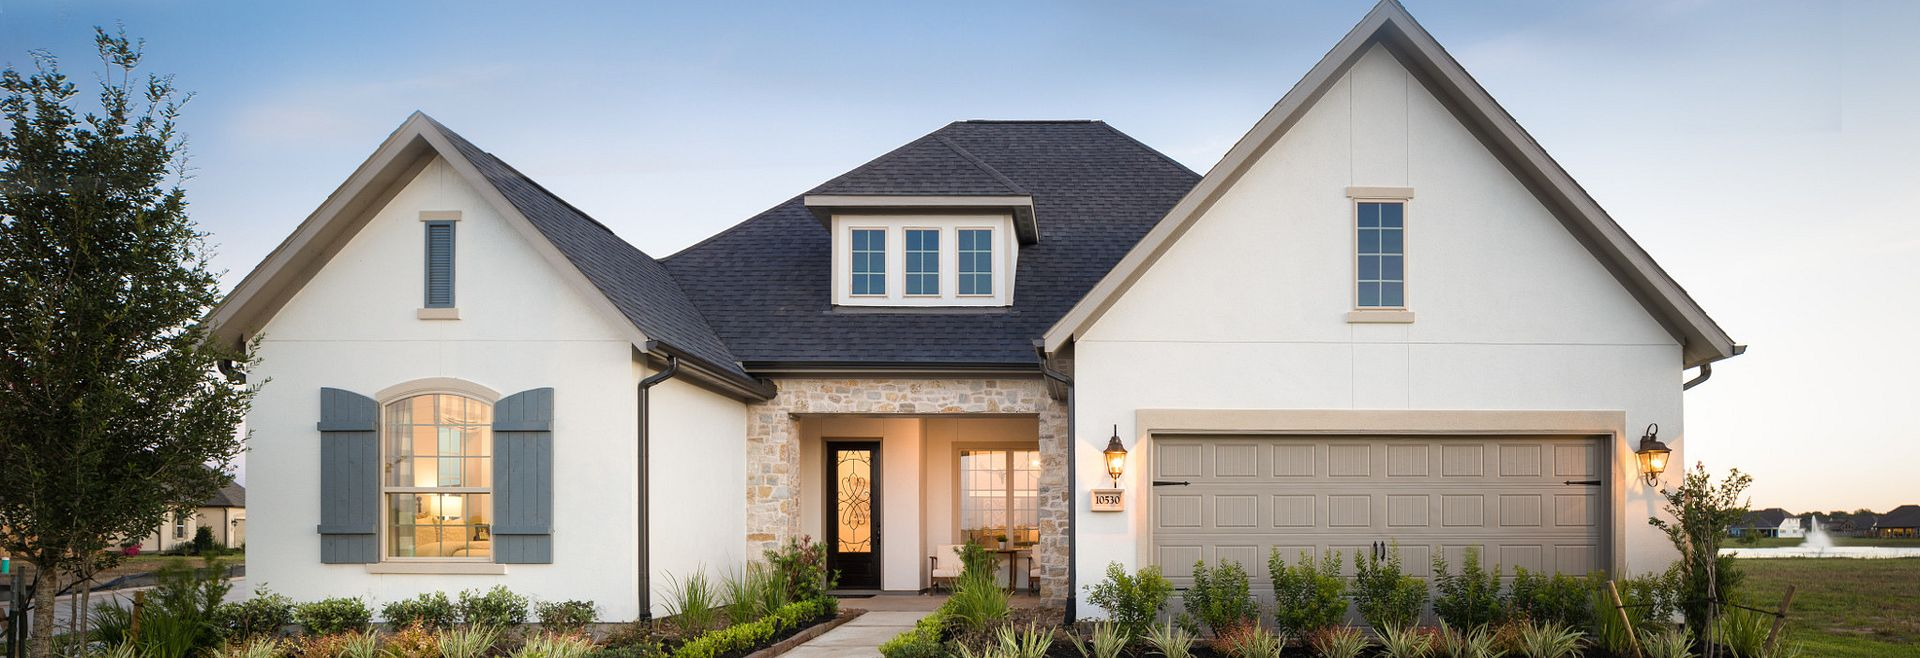 Sienna Plantation by Shea Homes in Missouri City, TX